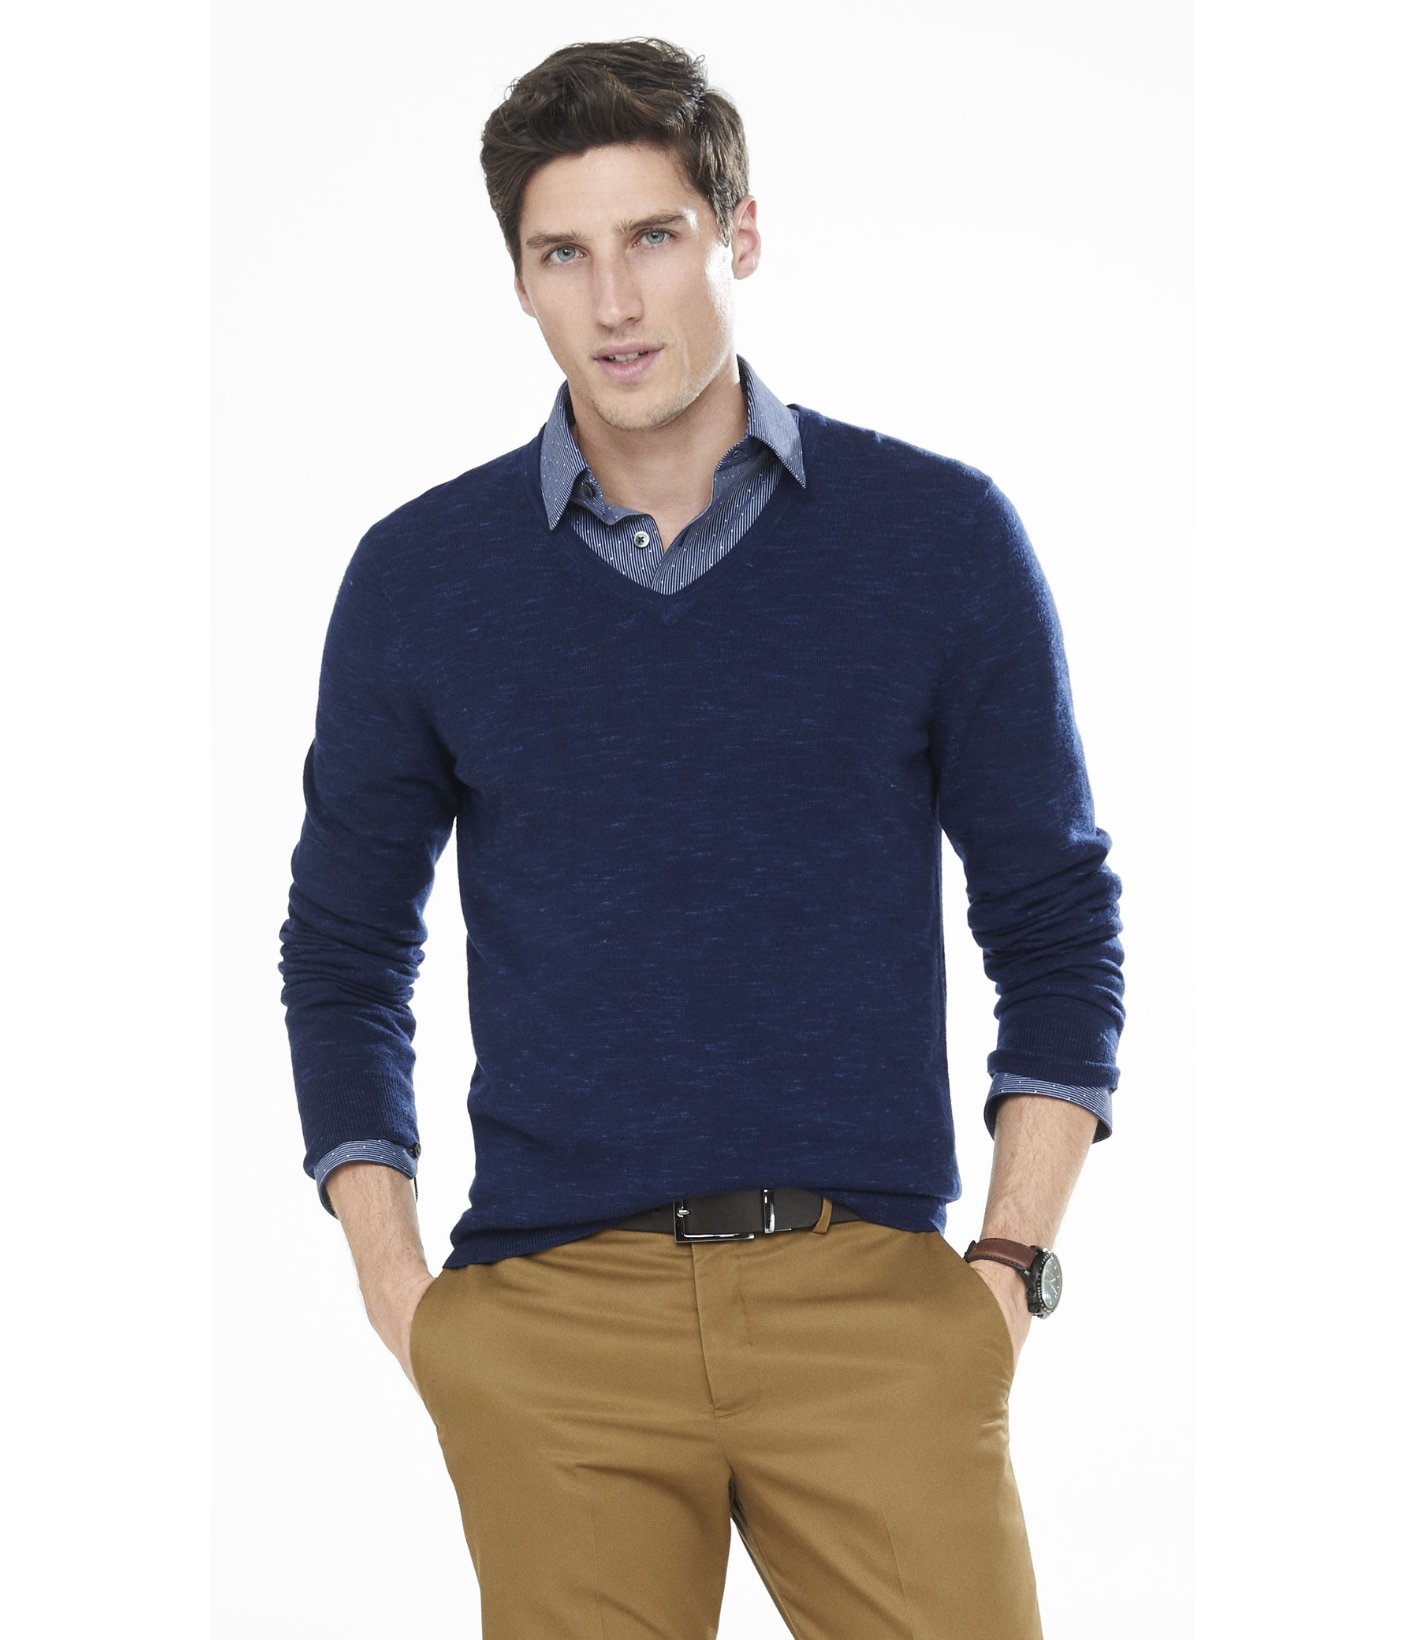 neidagrosk0dwju.ga: v neck sweater for men. From The Community. V-neck sweater with ribbed collar, sleeve cuffs and bottom hem. Amazon Essentials Men's V-Neck Sweater. by Amazon Essentials. $ $ 18 00 Prime. Exclusively for Prime Members. Some sizes/colors are Prime eligible. out of 5 .